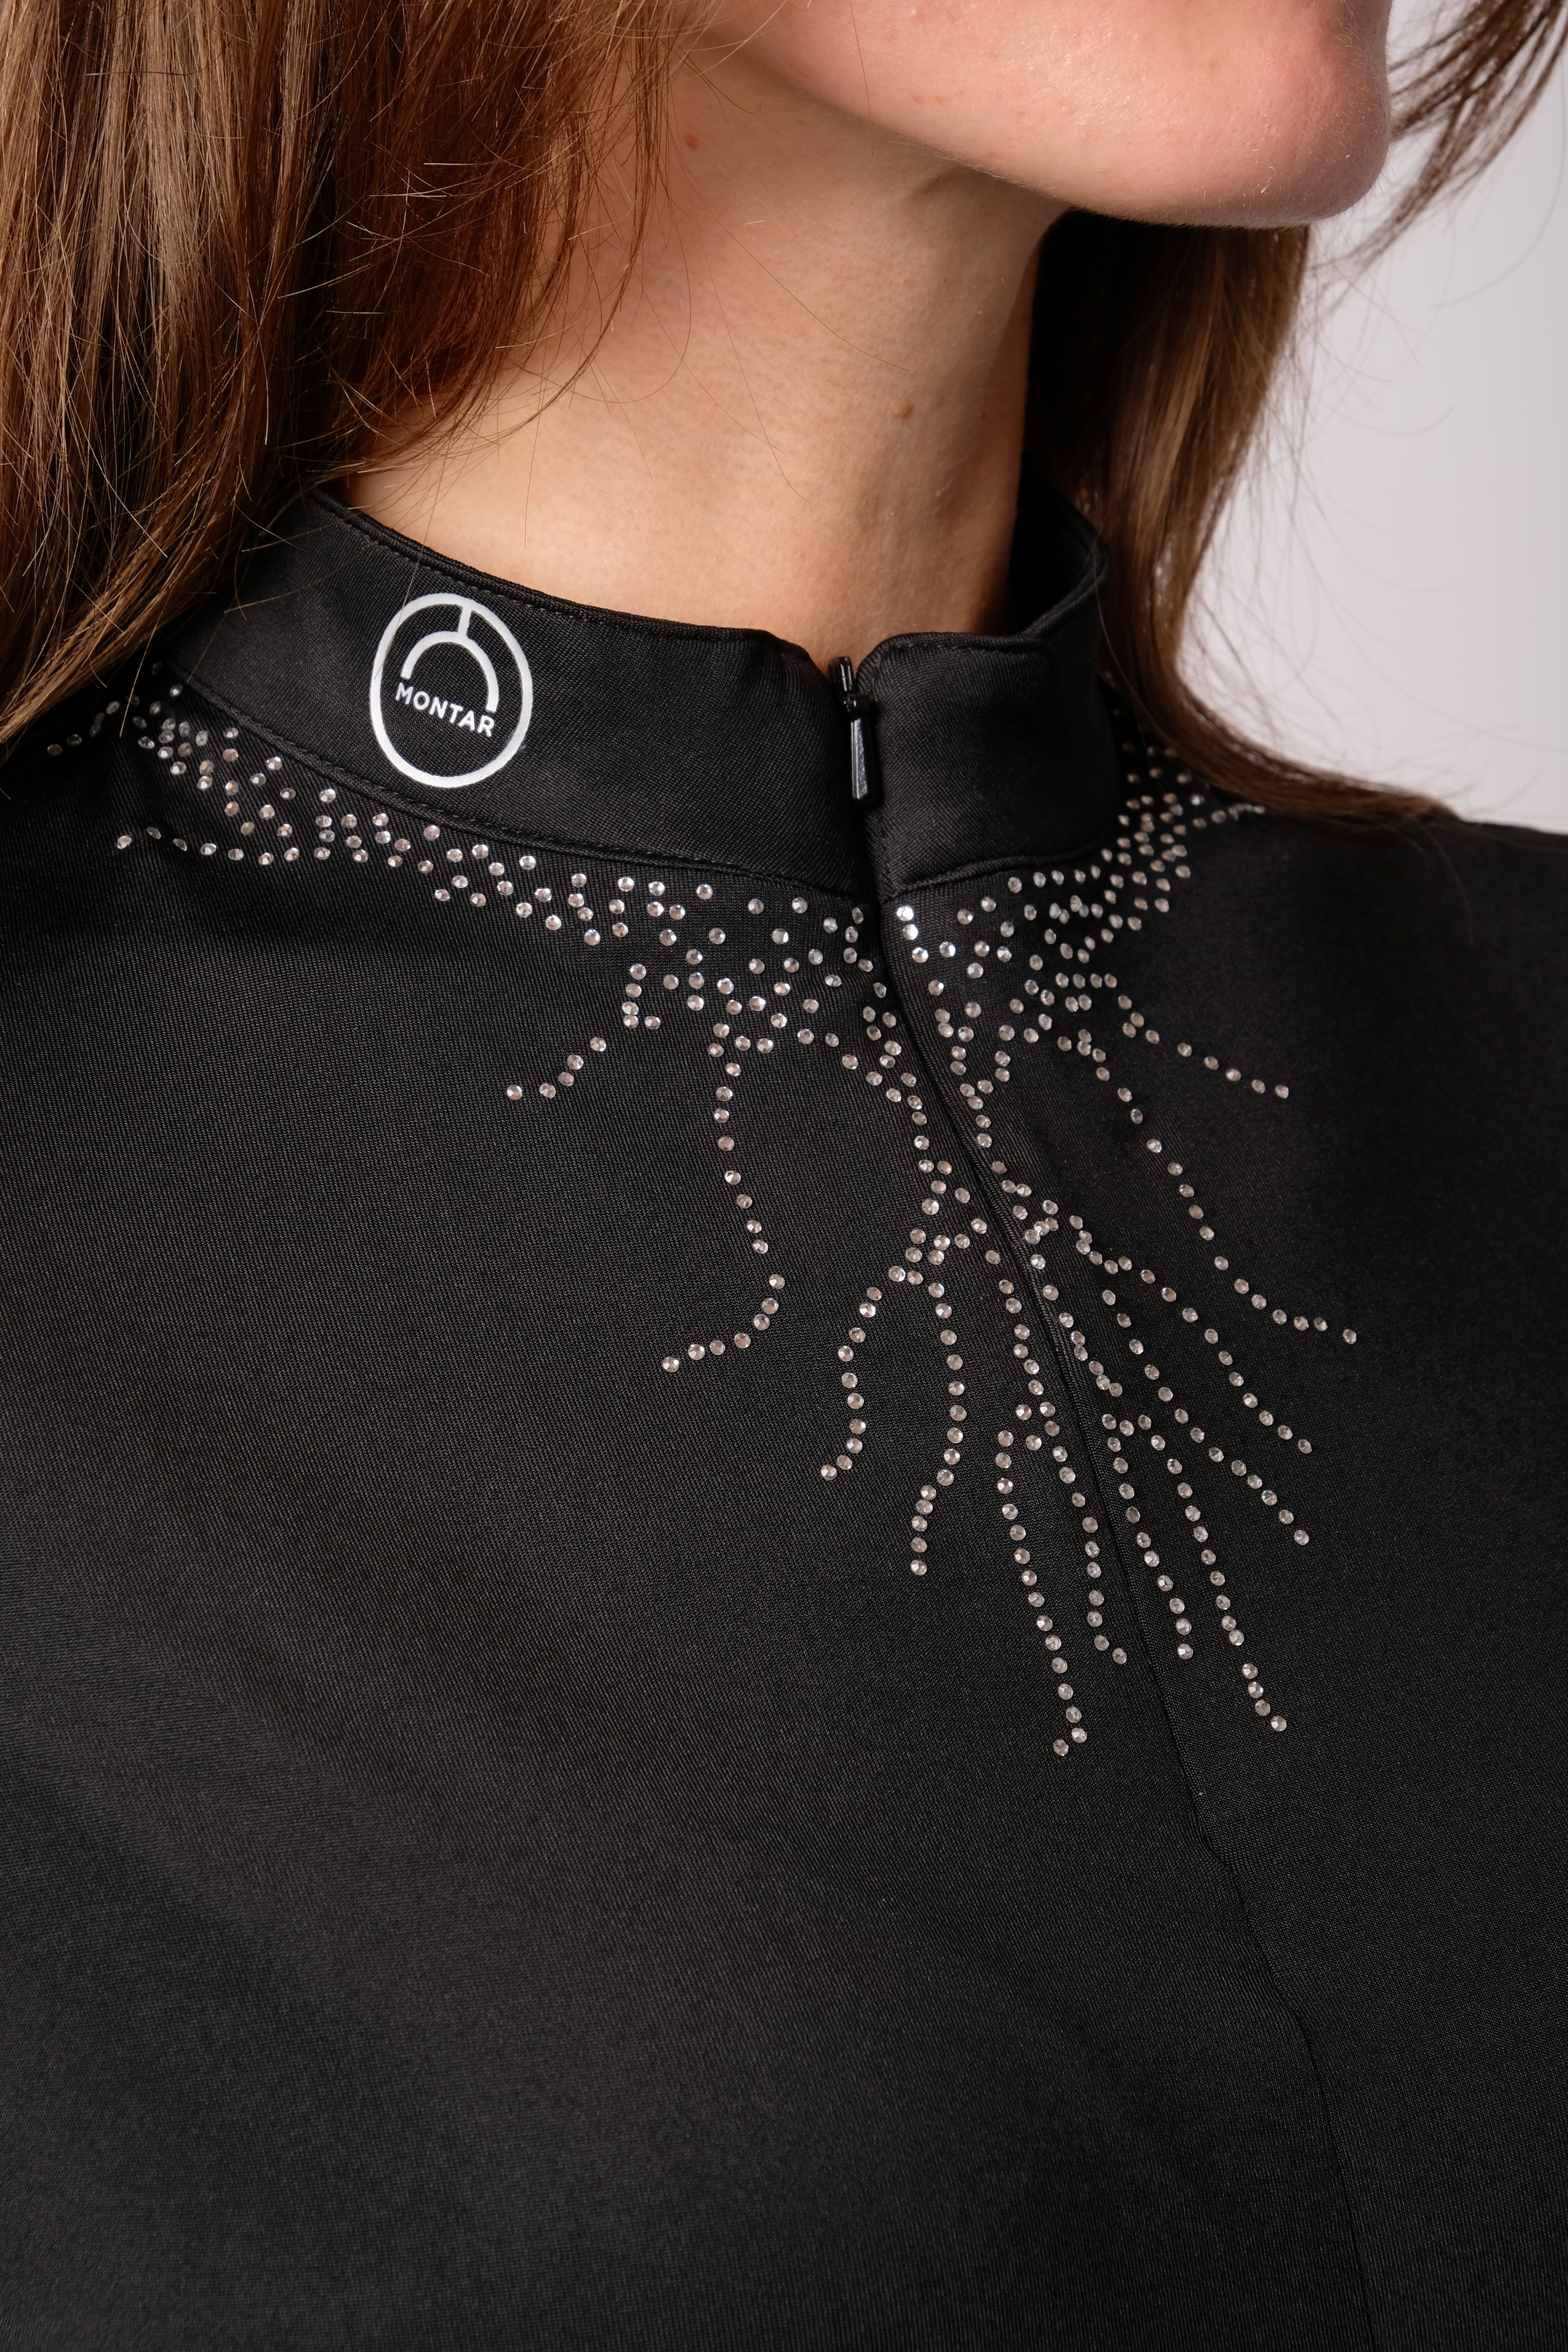 pl2113-4 Juliana Black Detail.JPG